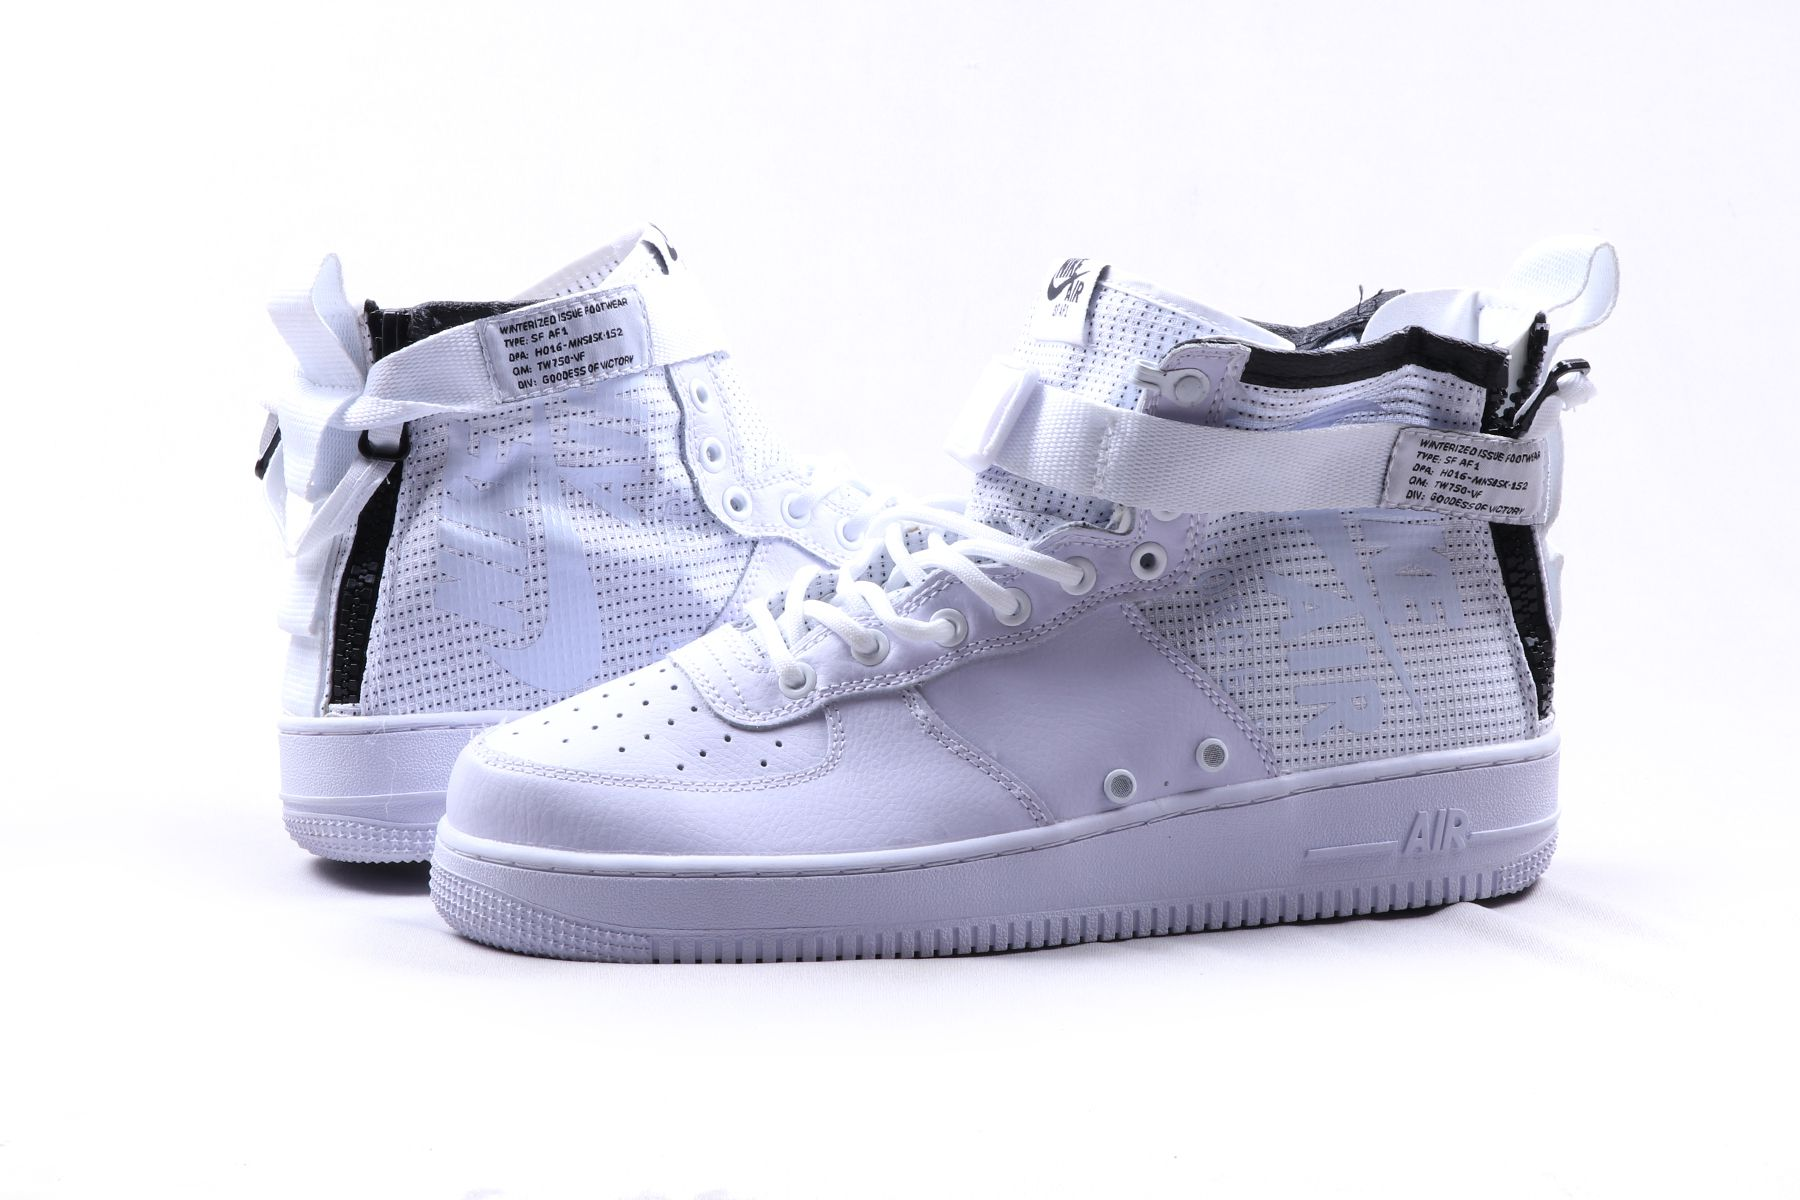 low priced d7d83 77be6 Nike 1 SF AIR FORCE 1 MID White Sneakers White Casual Shoes